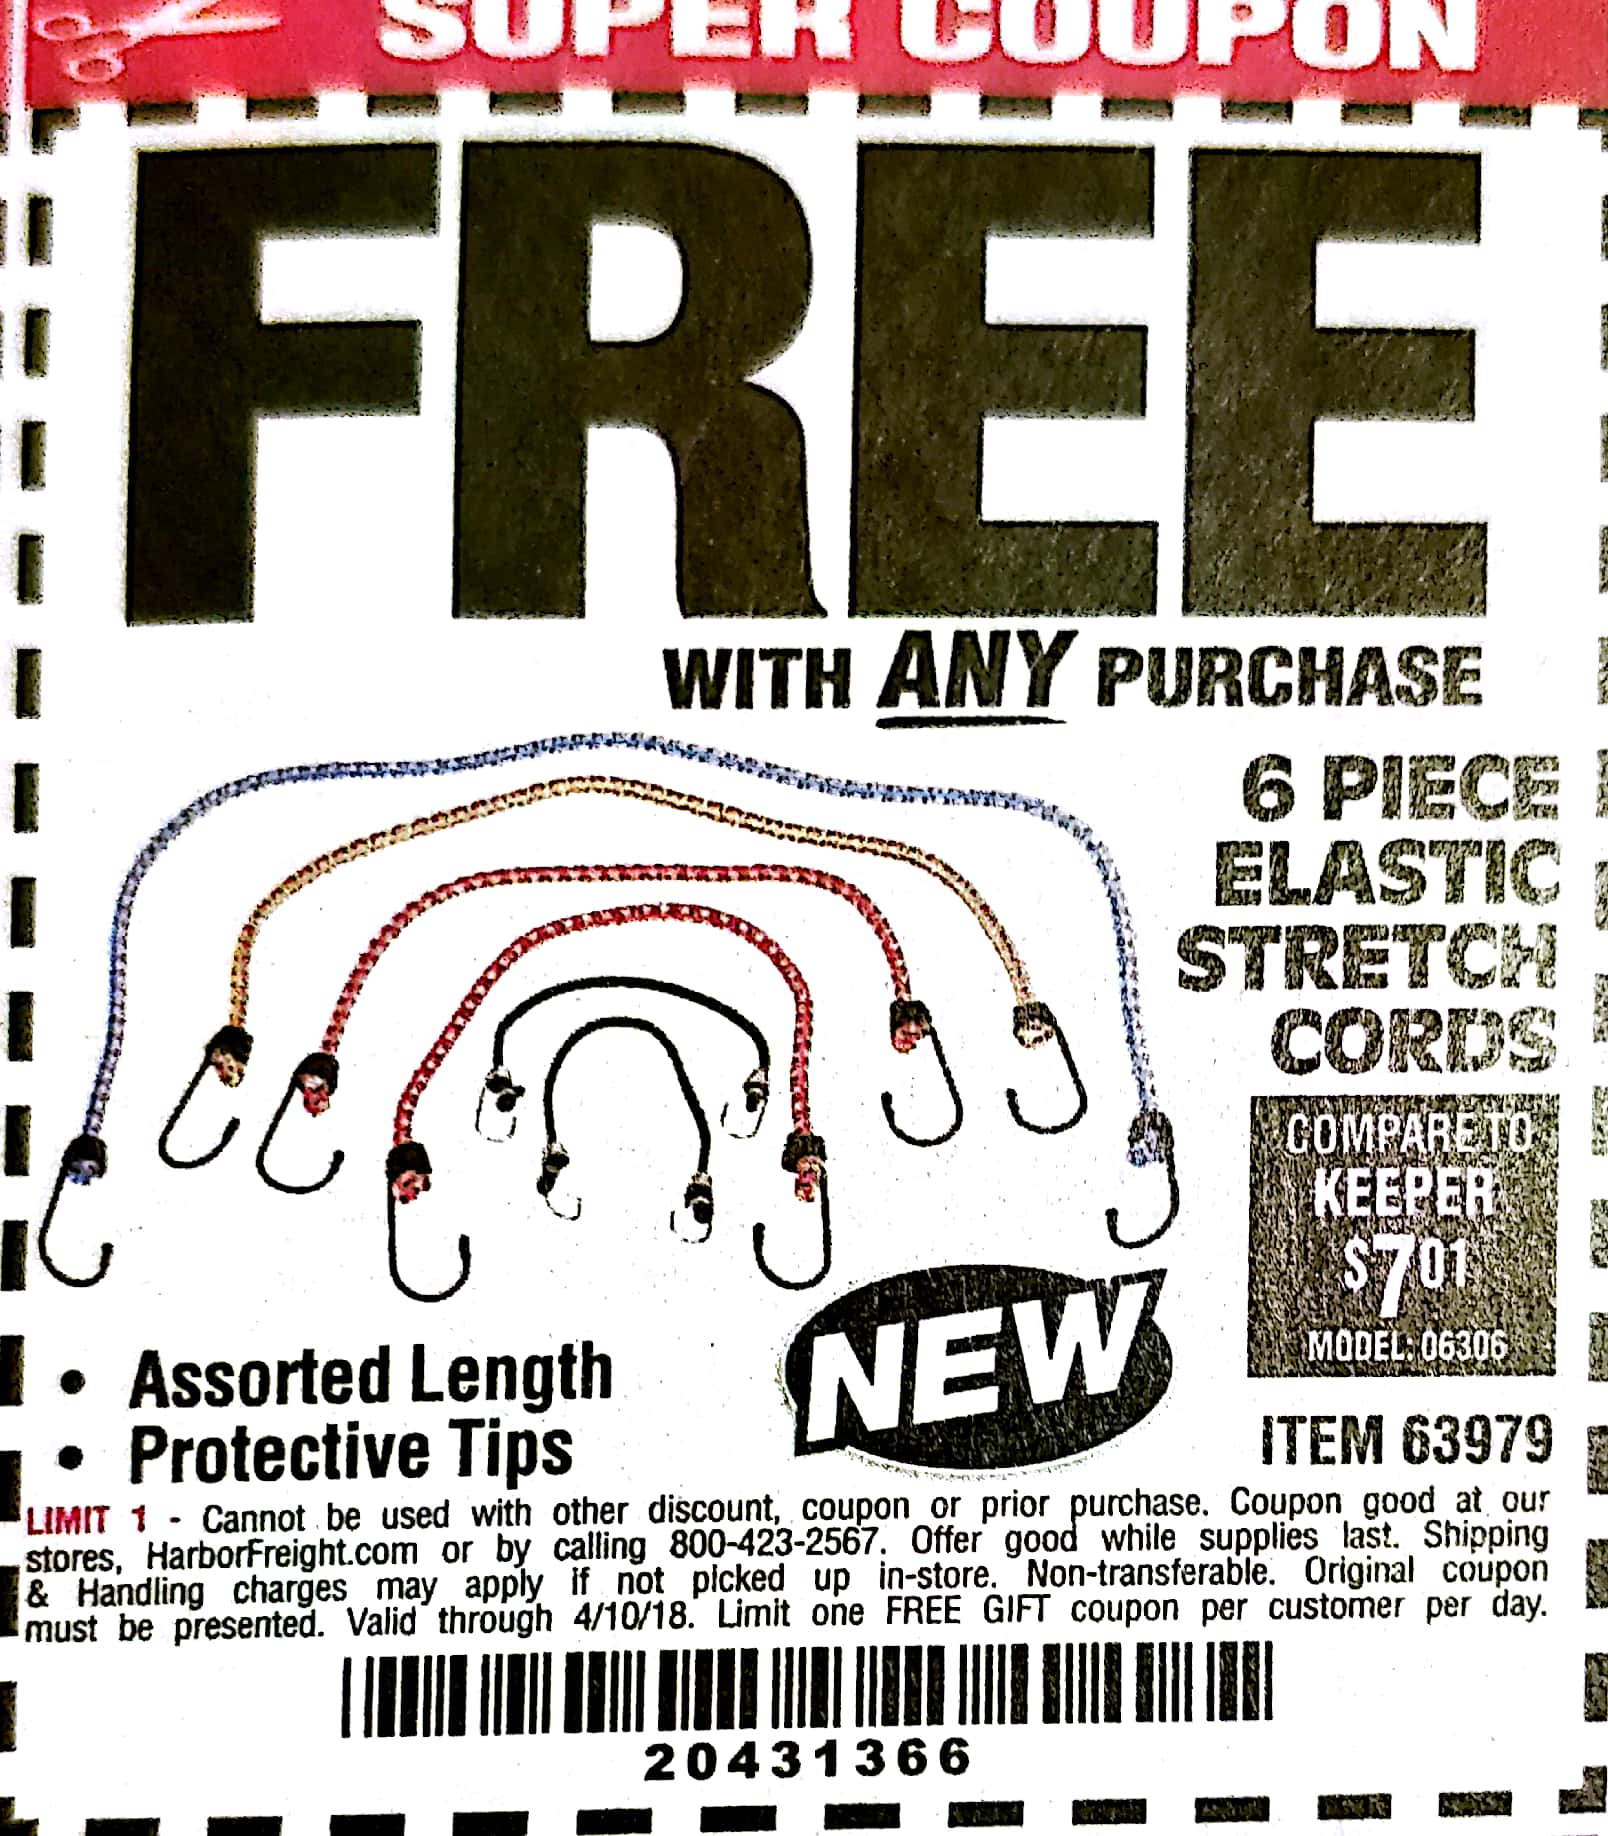 Harbor Freight 6 PIECE ELASTIC STRETCH CORDS coupon